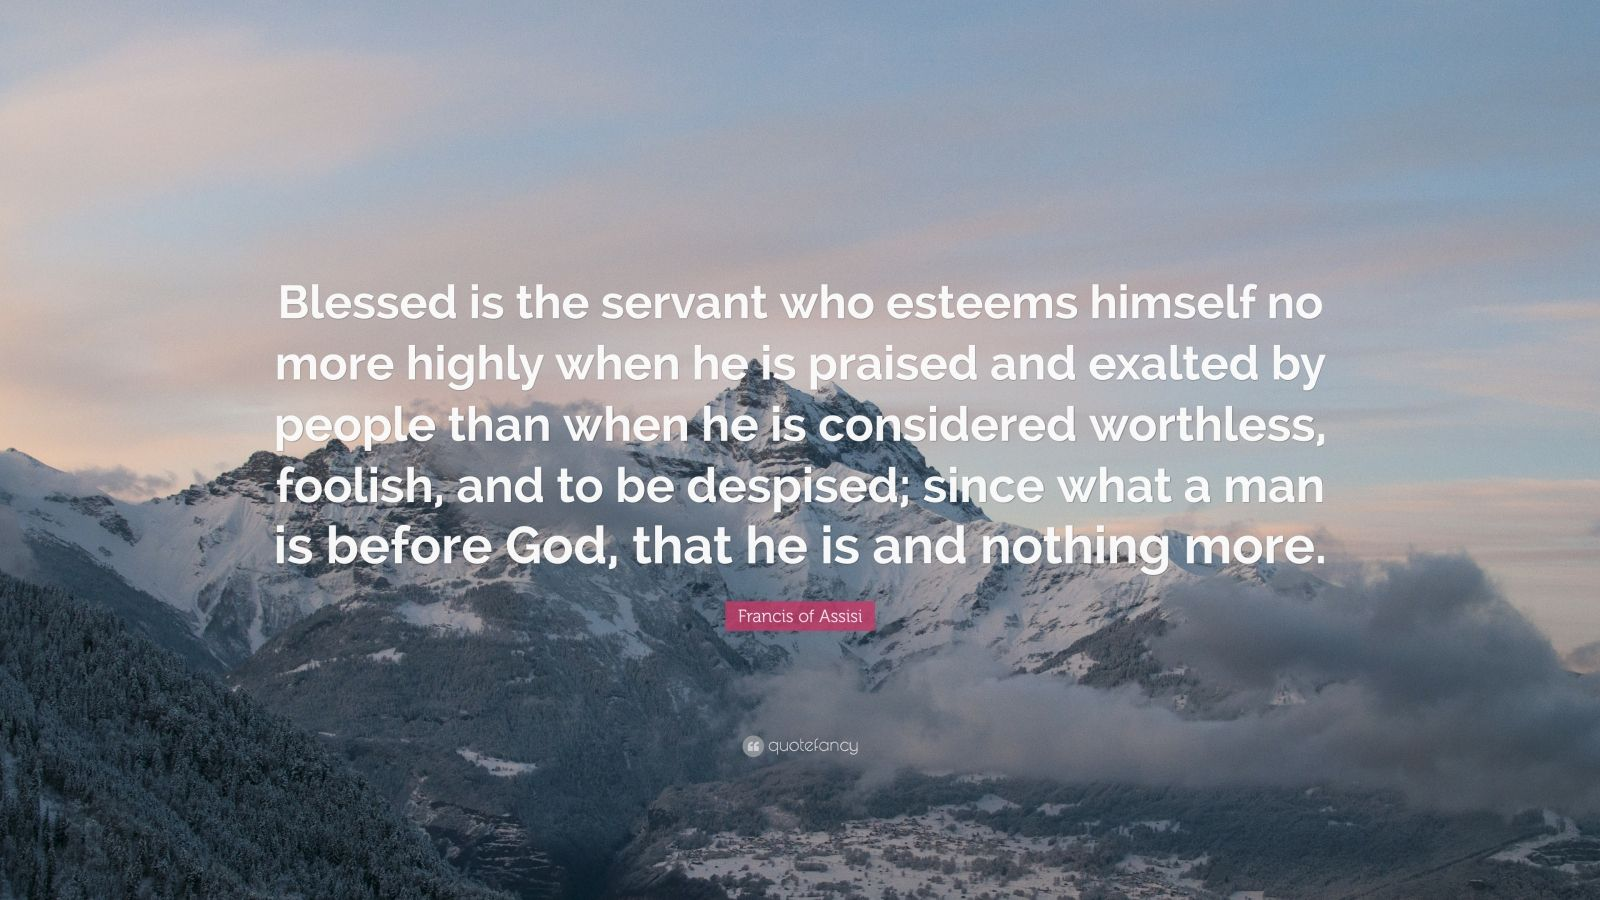 """Francis of Assisi Quote: """"Blessed is the servant who esteems himself no more highly when he is praised and exalted by people than when he is considered worthless, foolish, and to be despised; since what a man is before God, that he is and nothing more."""""""